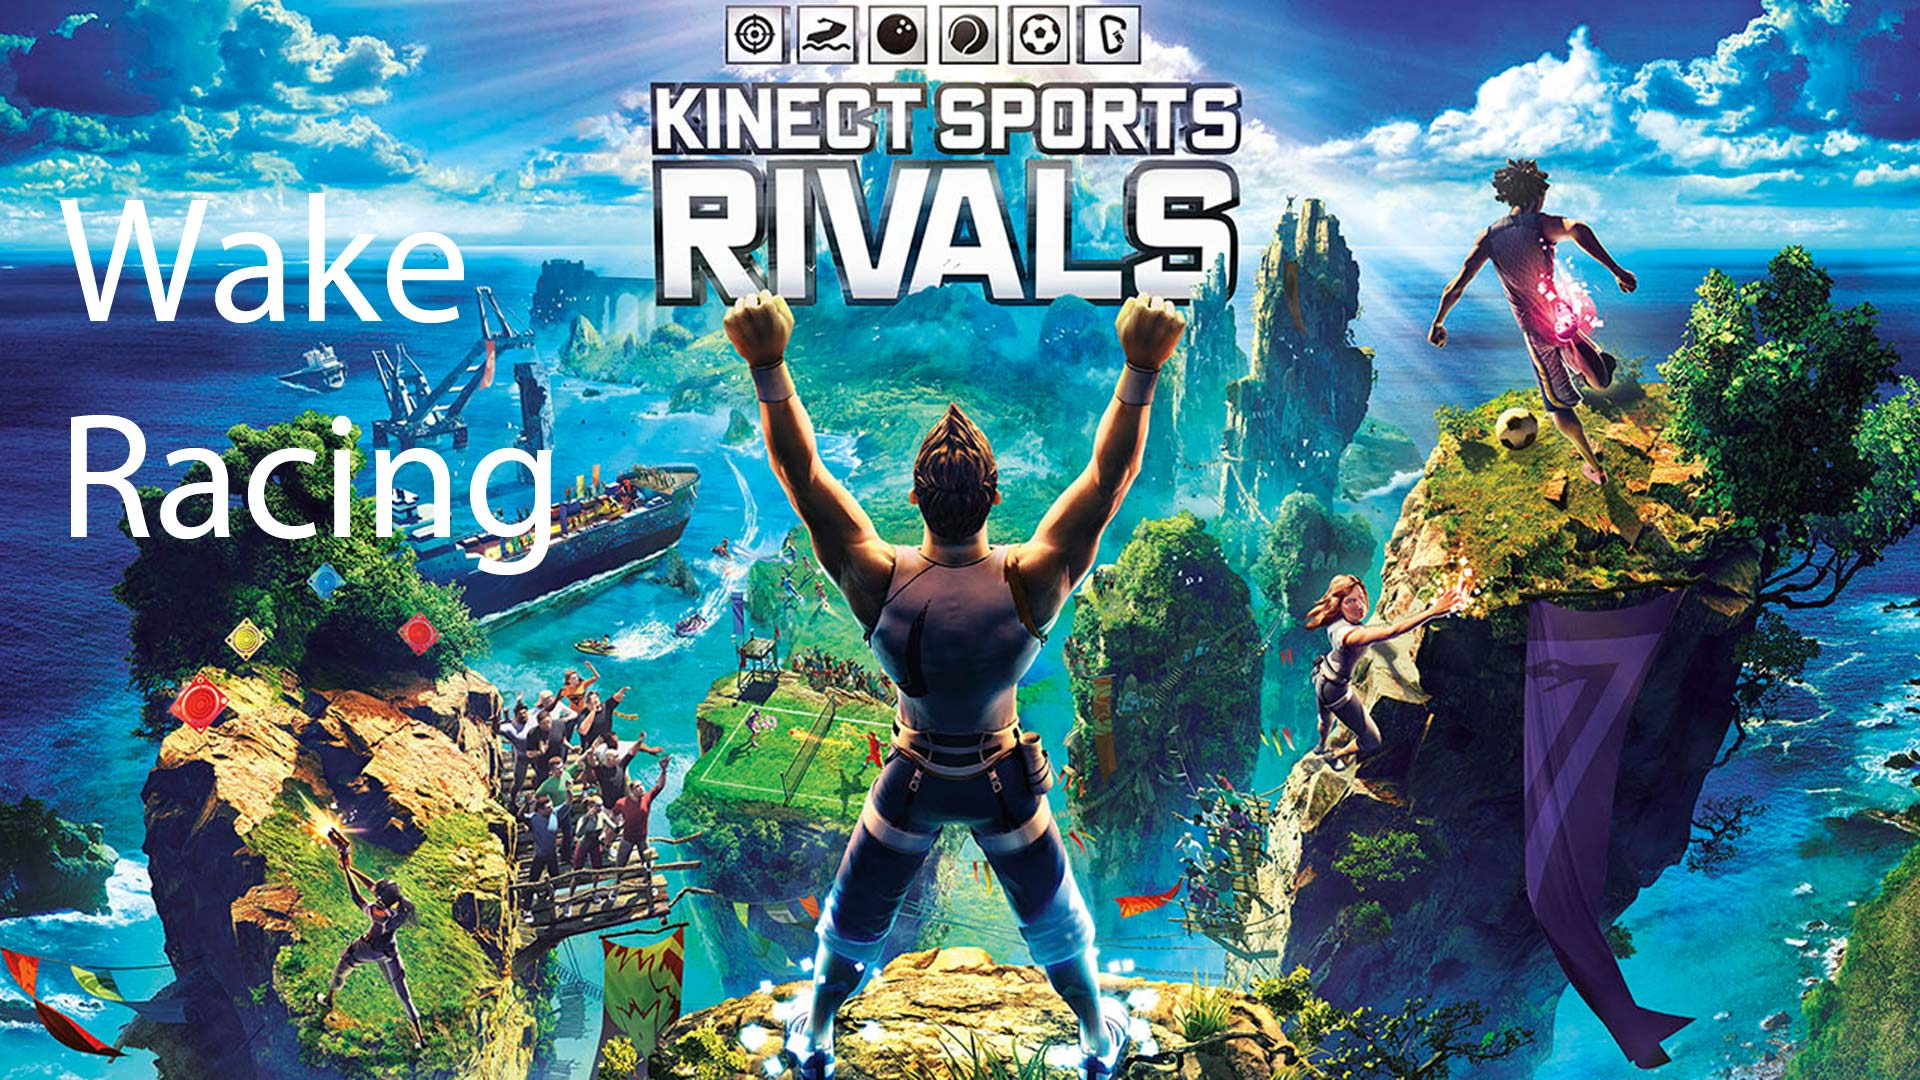 Kinect Sports Rivals Wake Racing